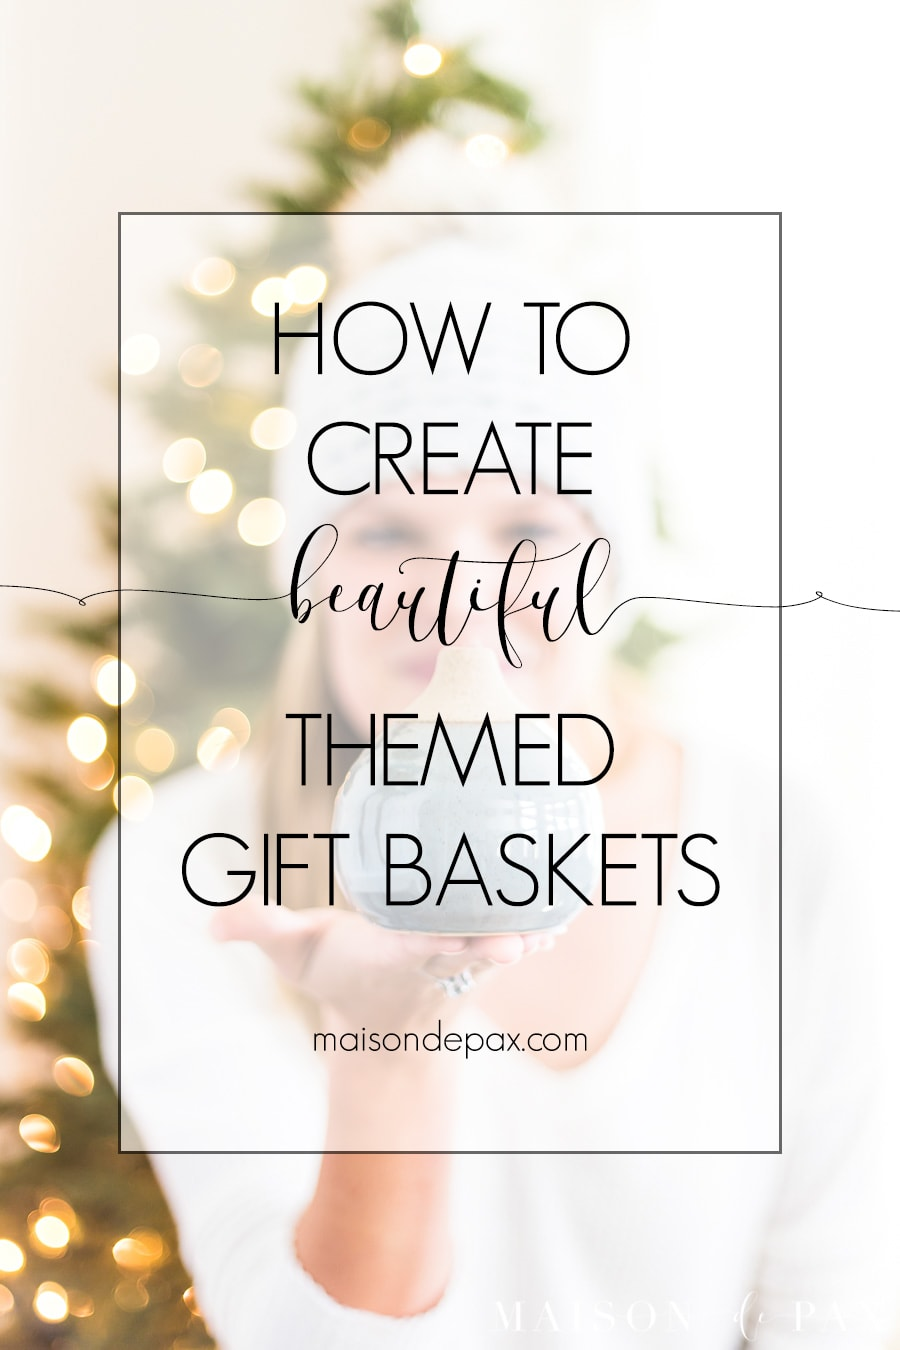 how to create beautiful themed gift baskets | Maison de Pax